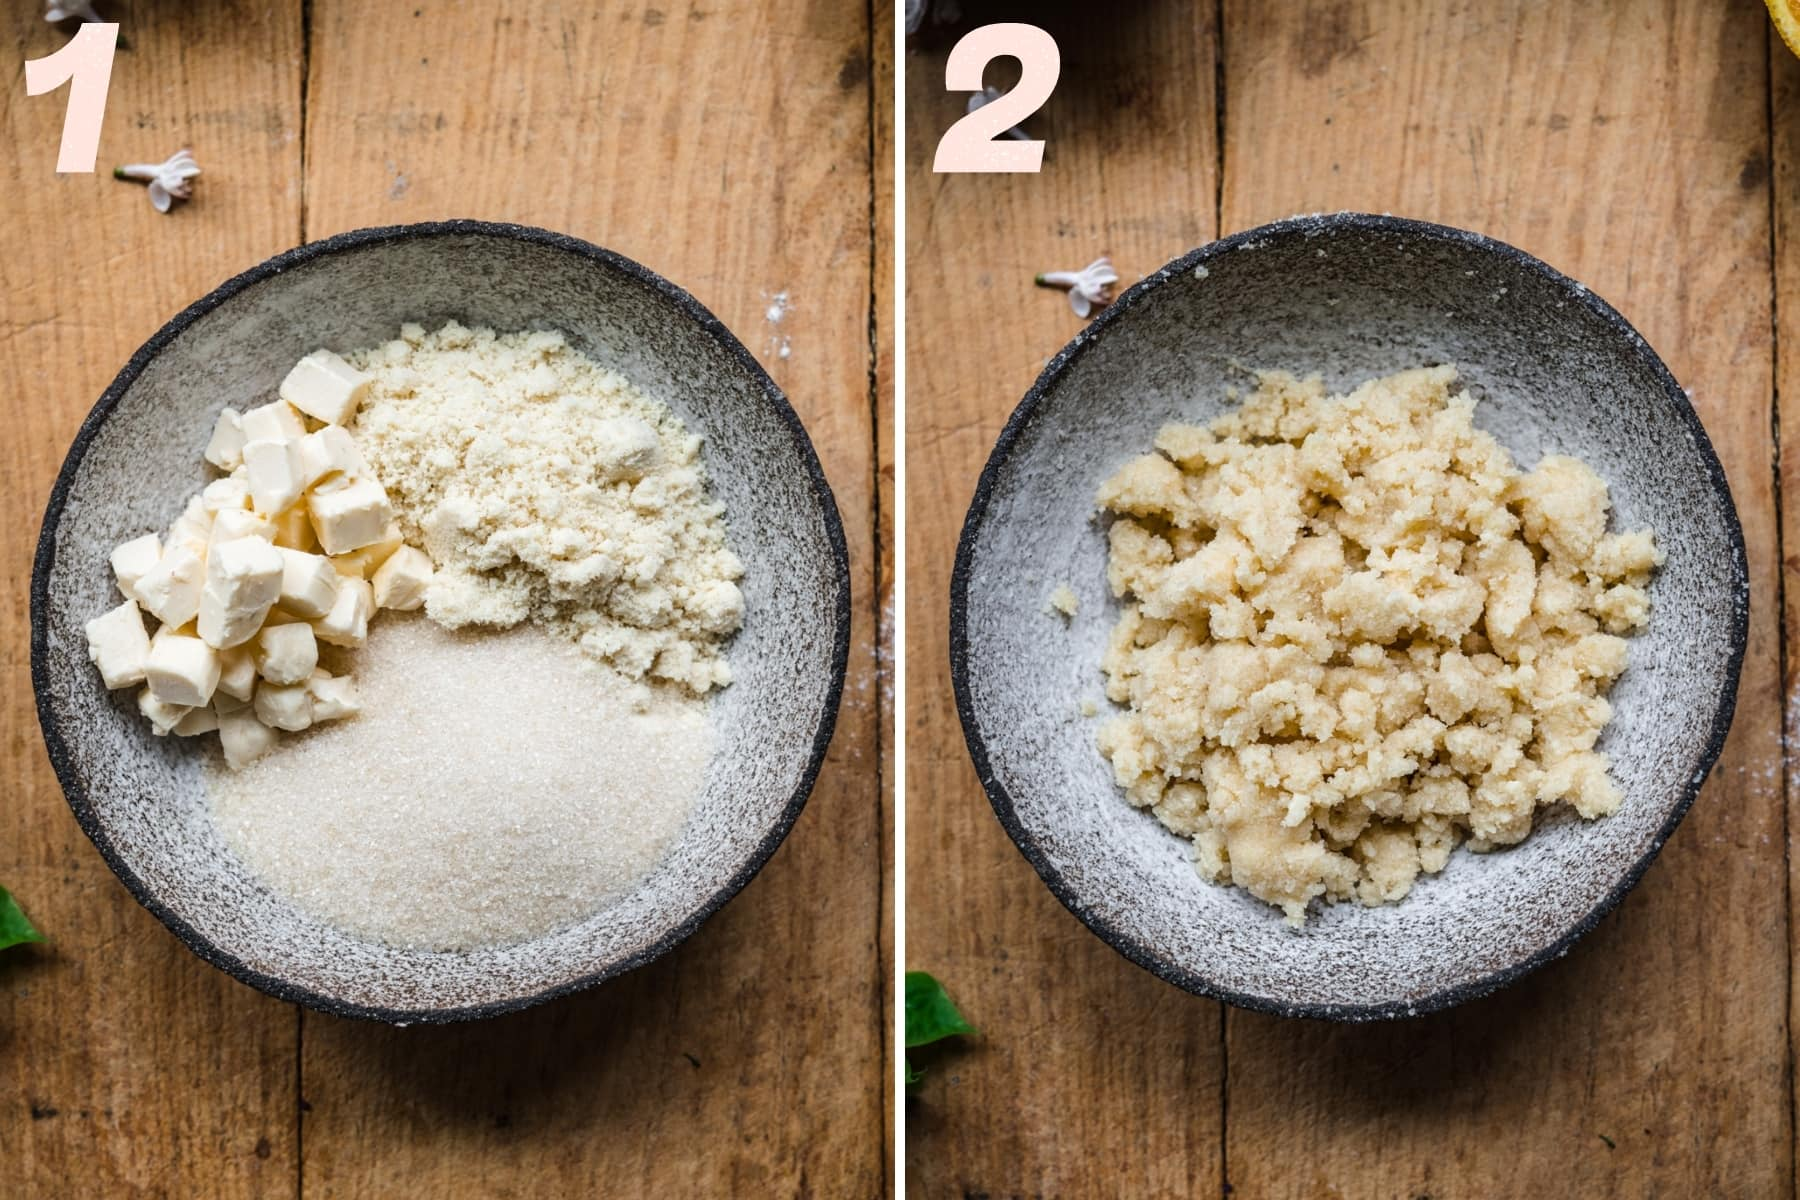 before and after mixing together ingredients for streusel in small bowl.